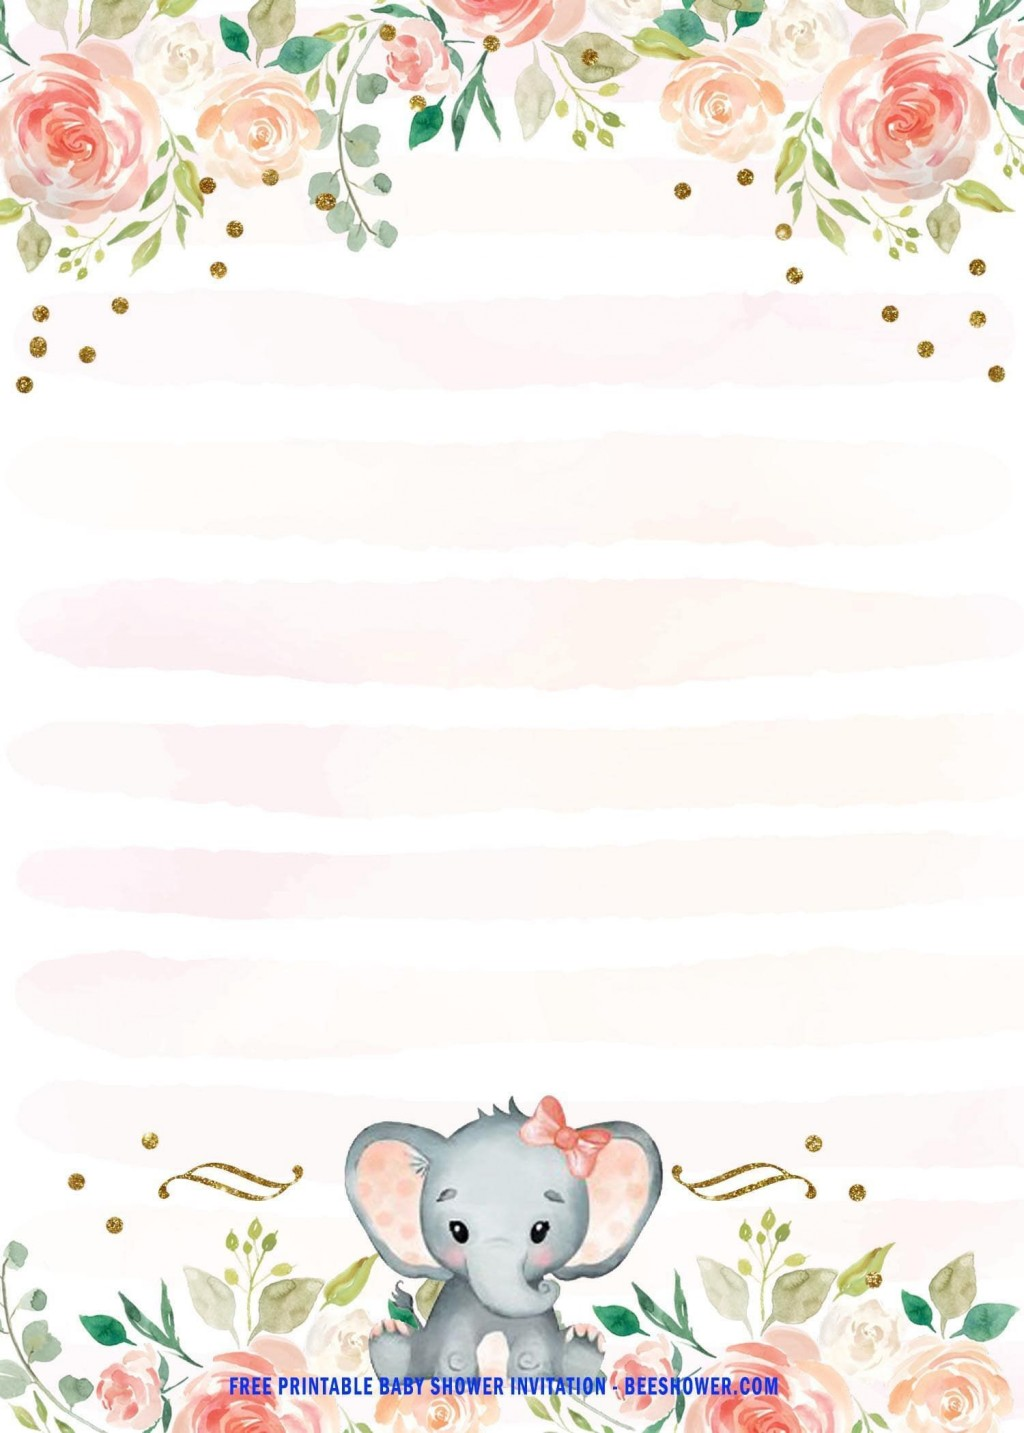 004 Archaicawful Free Girl Baby Shower Invitation To Print Picture  Printable TwinLarge